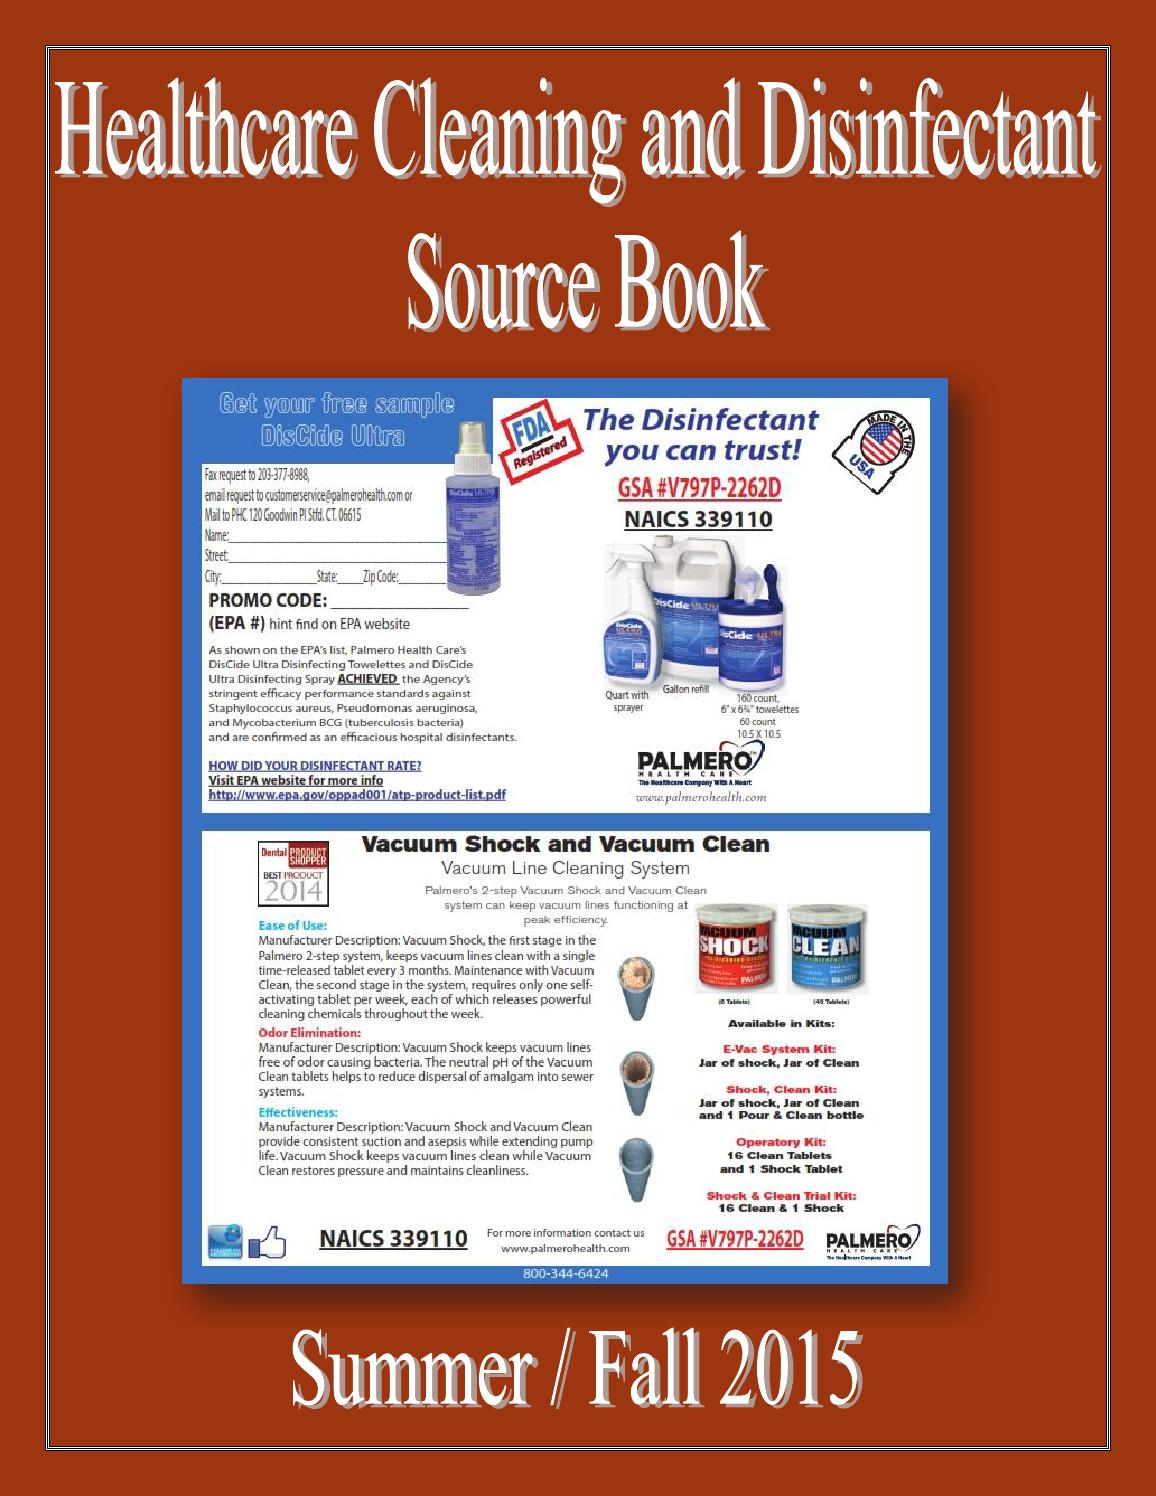 cf4ecf8817 Healthcare Cleaning and Disinfectant Source Book by Federal Buyers Guide